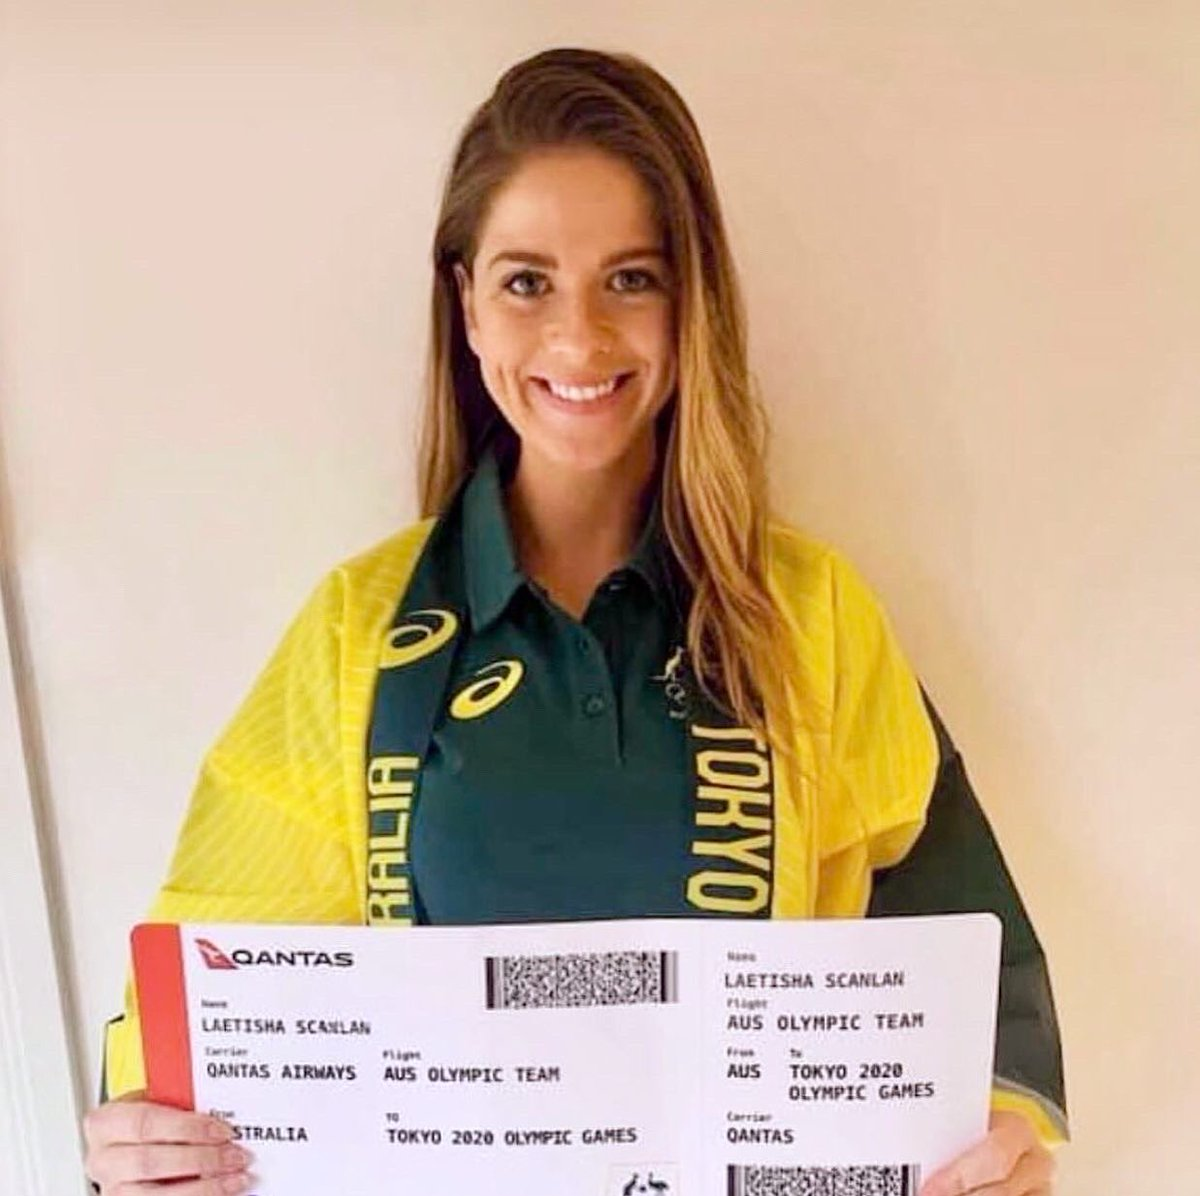 Congrats to former @Haileybury Laetisha Scanlan (OH2007) who has qualified for her 2nd Olympic Games after finishing 5th in 2016.  She will represent Australia in shooting at Tokyo 2020 (2021)   #apssport #APS #schoolsport #unitedcoloursoftheaps #leaders #apsrepsport #apsolympian https://t.co/N5bsLNeySh